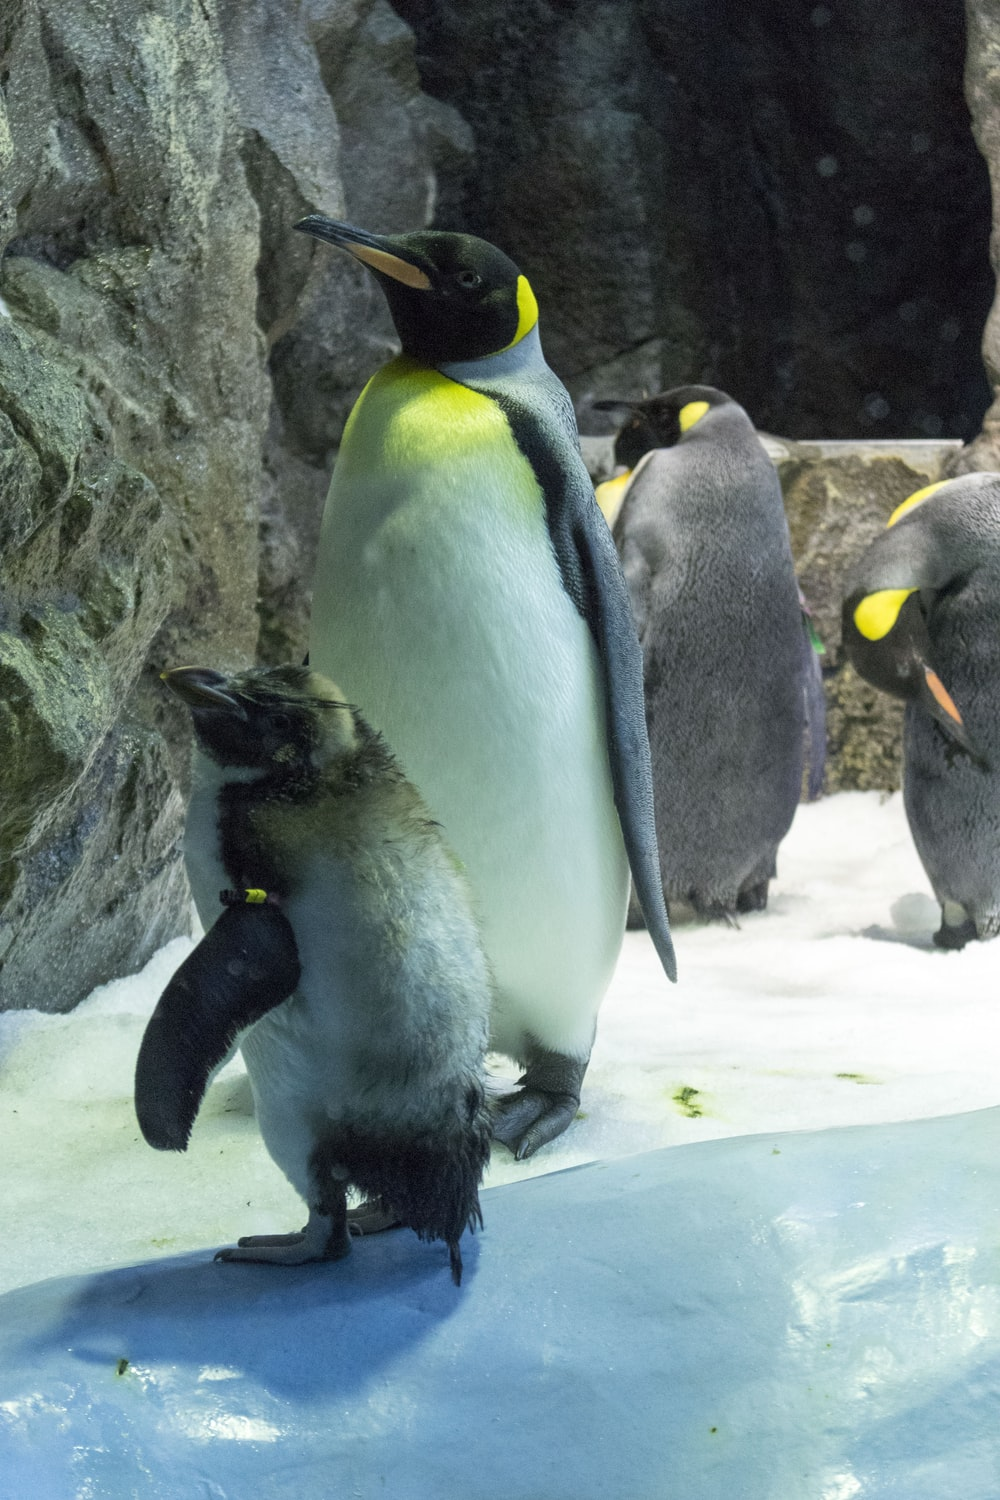 penguins on snow covered ground during daytime